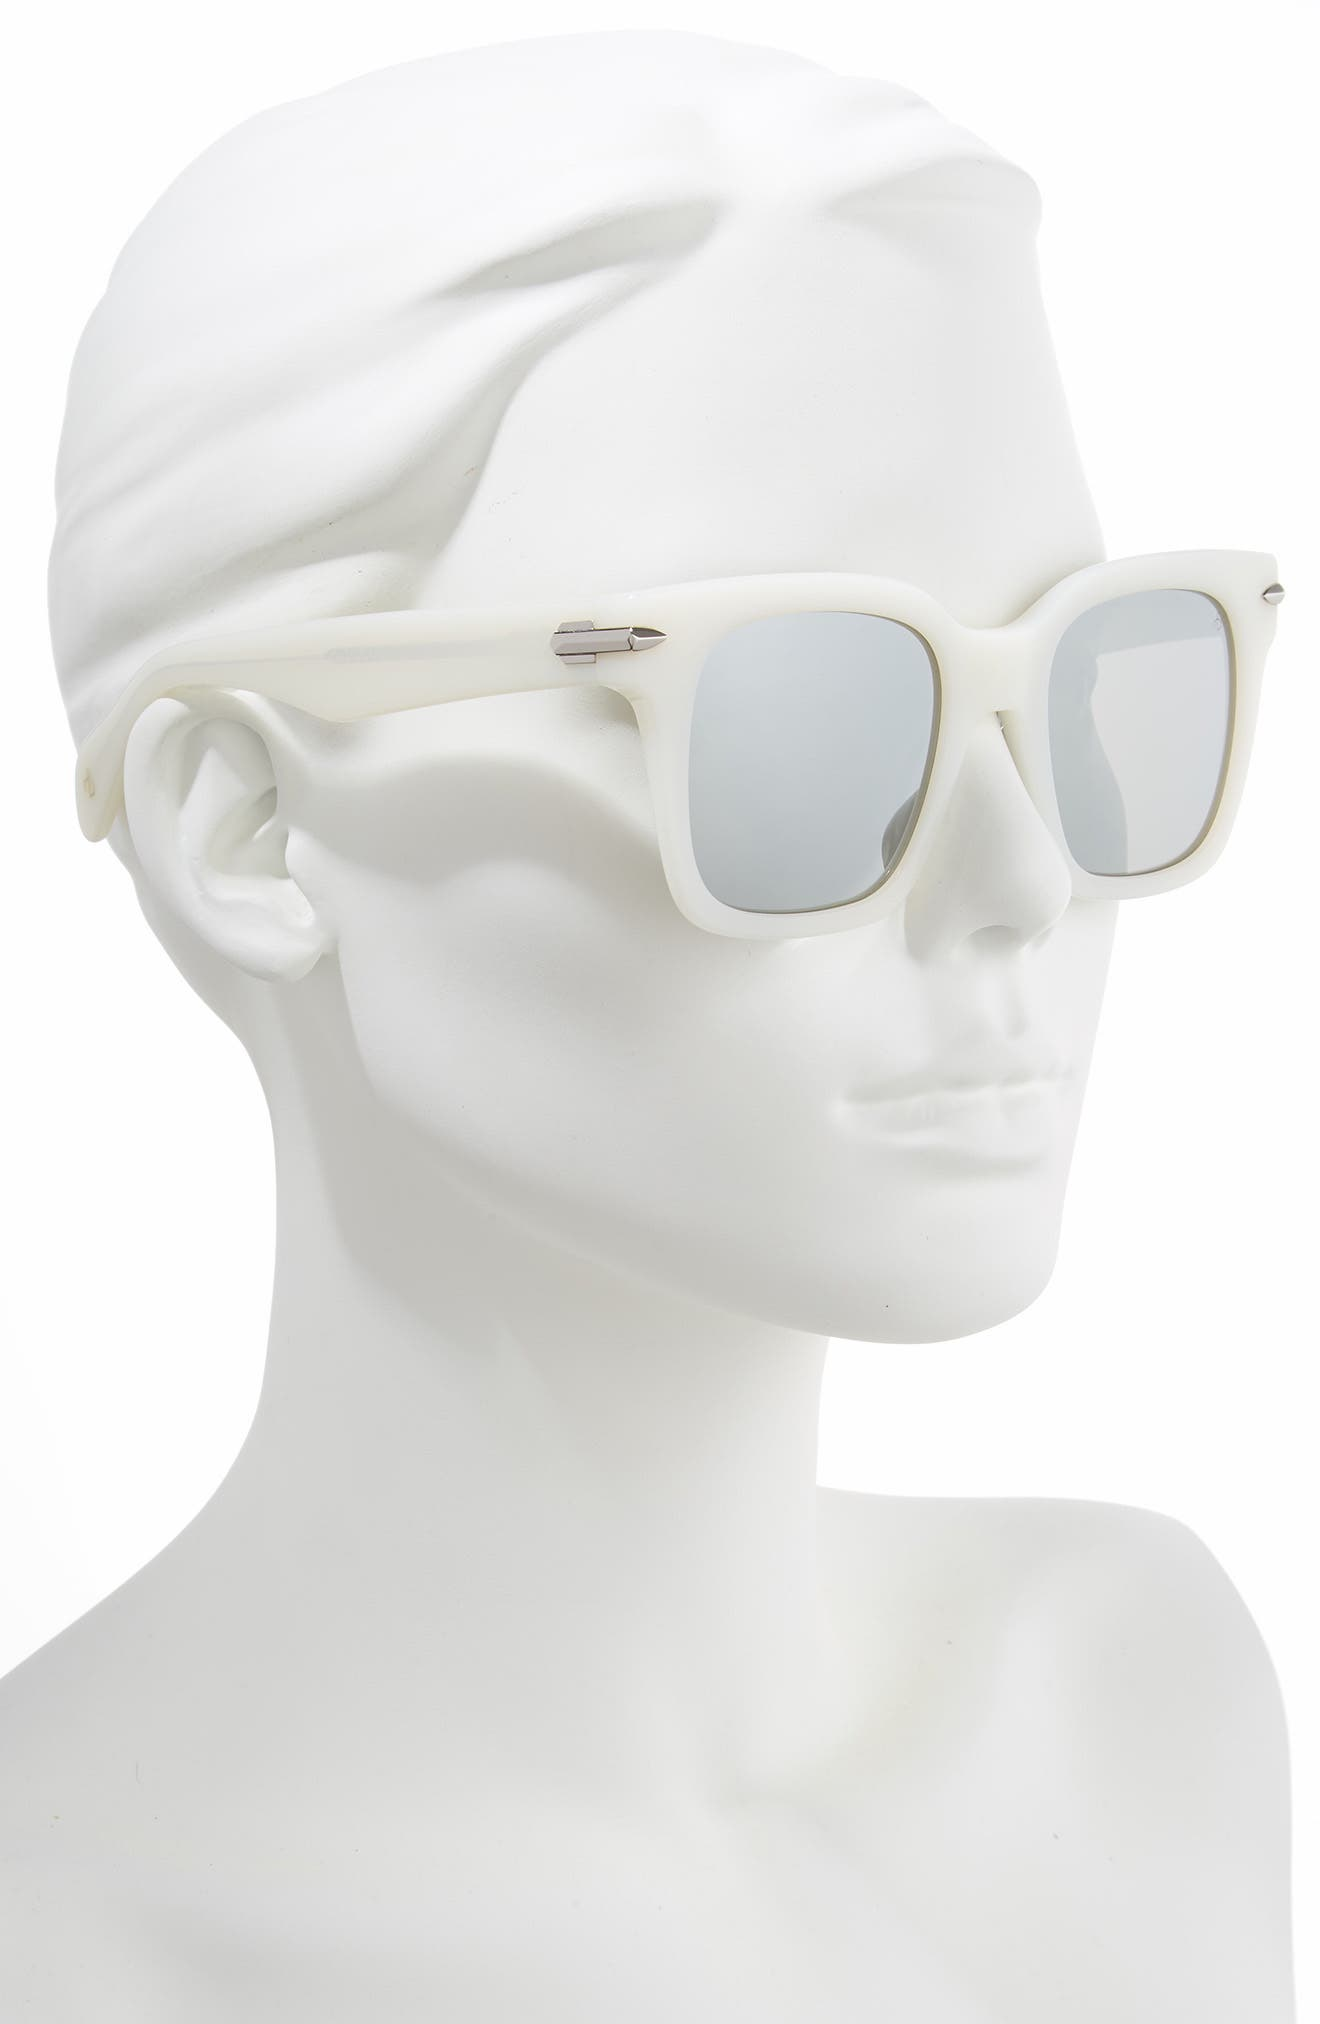 51mm Polarized Mirrored Square Sunglasses,                             Alternate thumbnail 2, color,                             WHITE